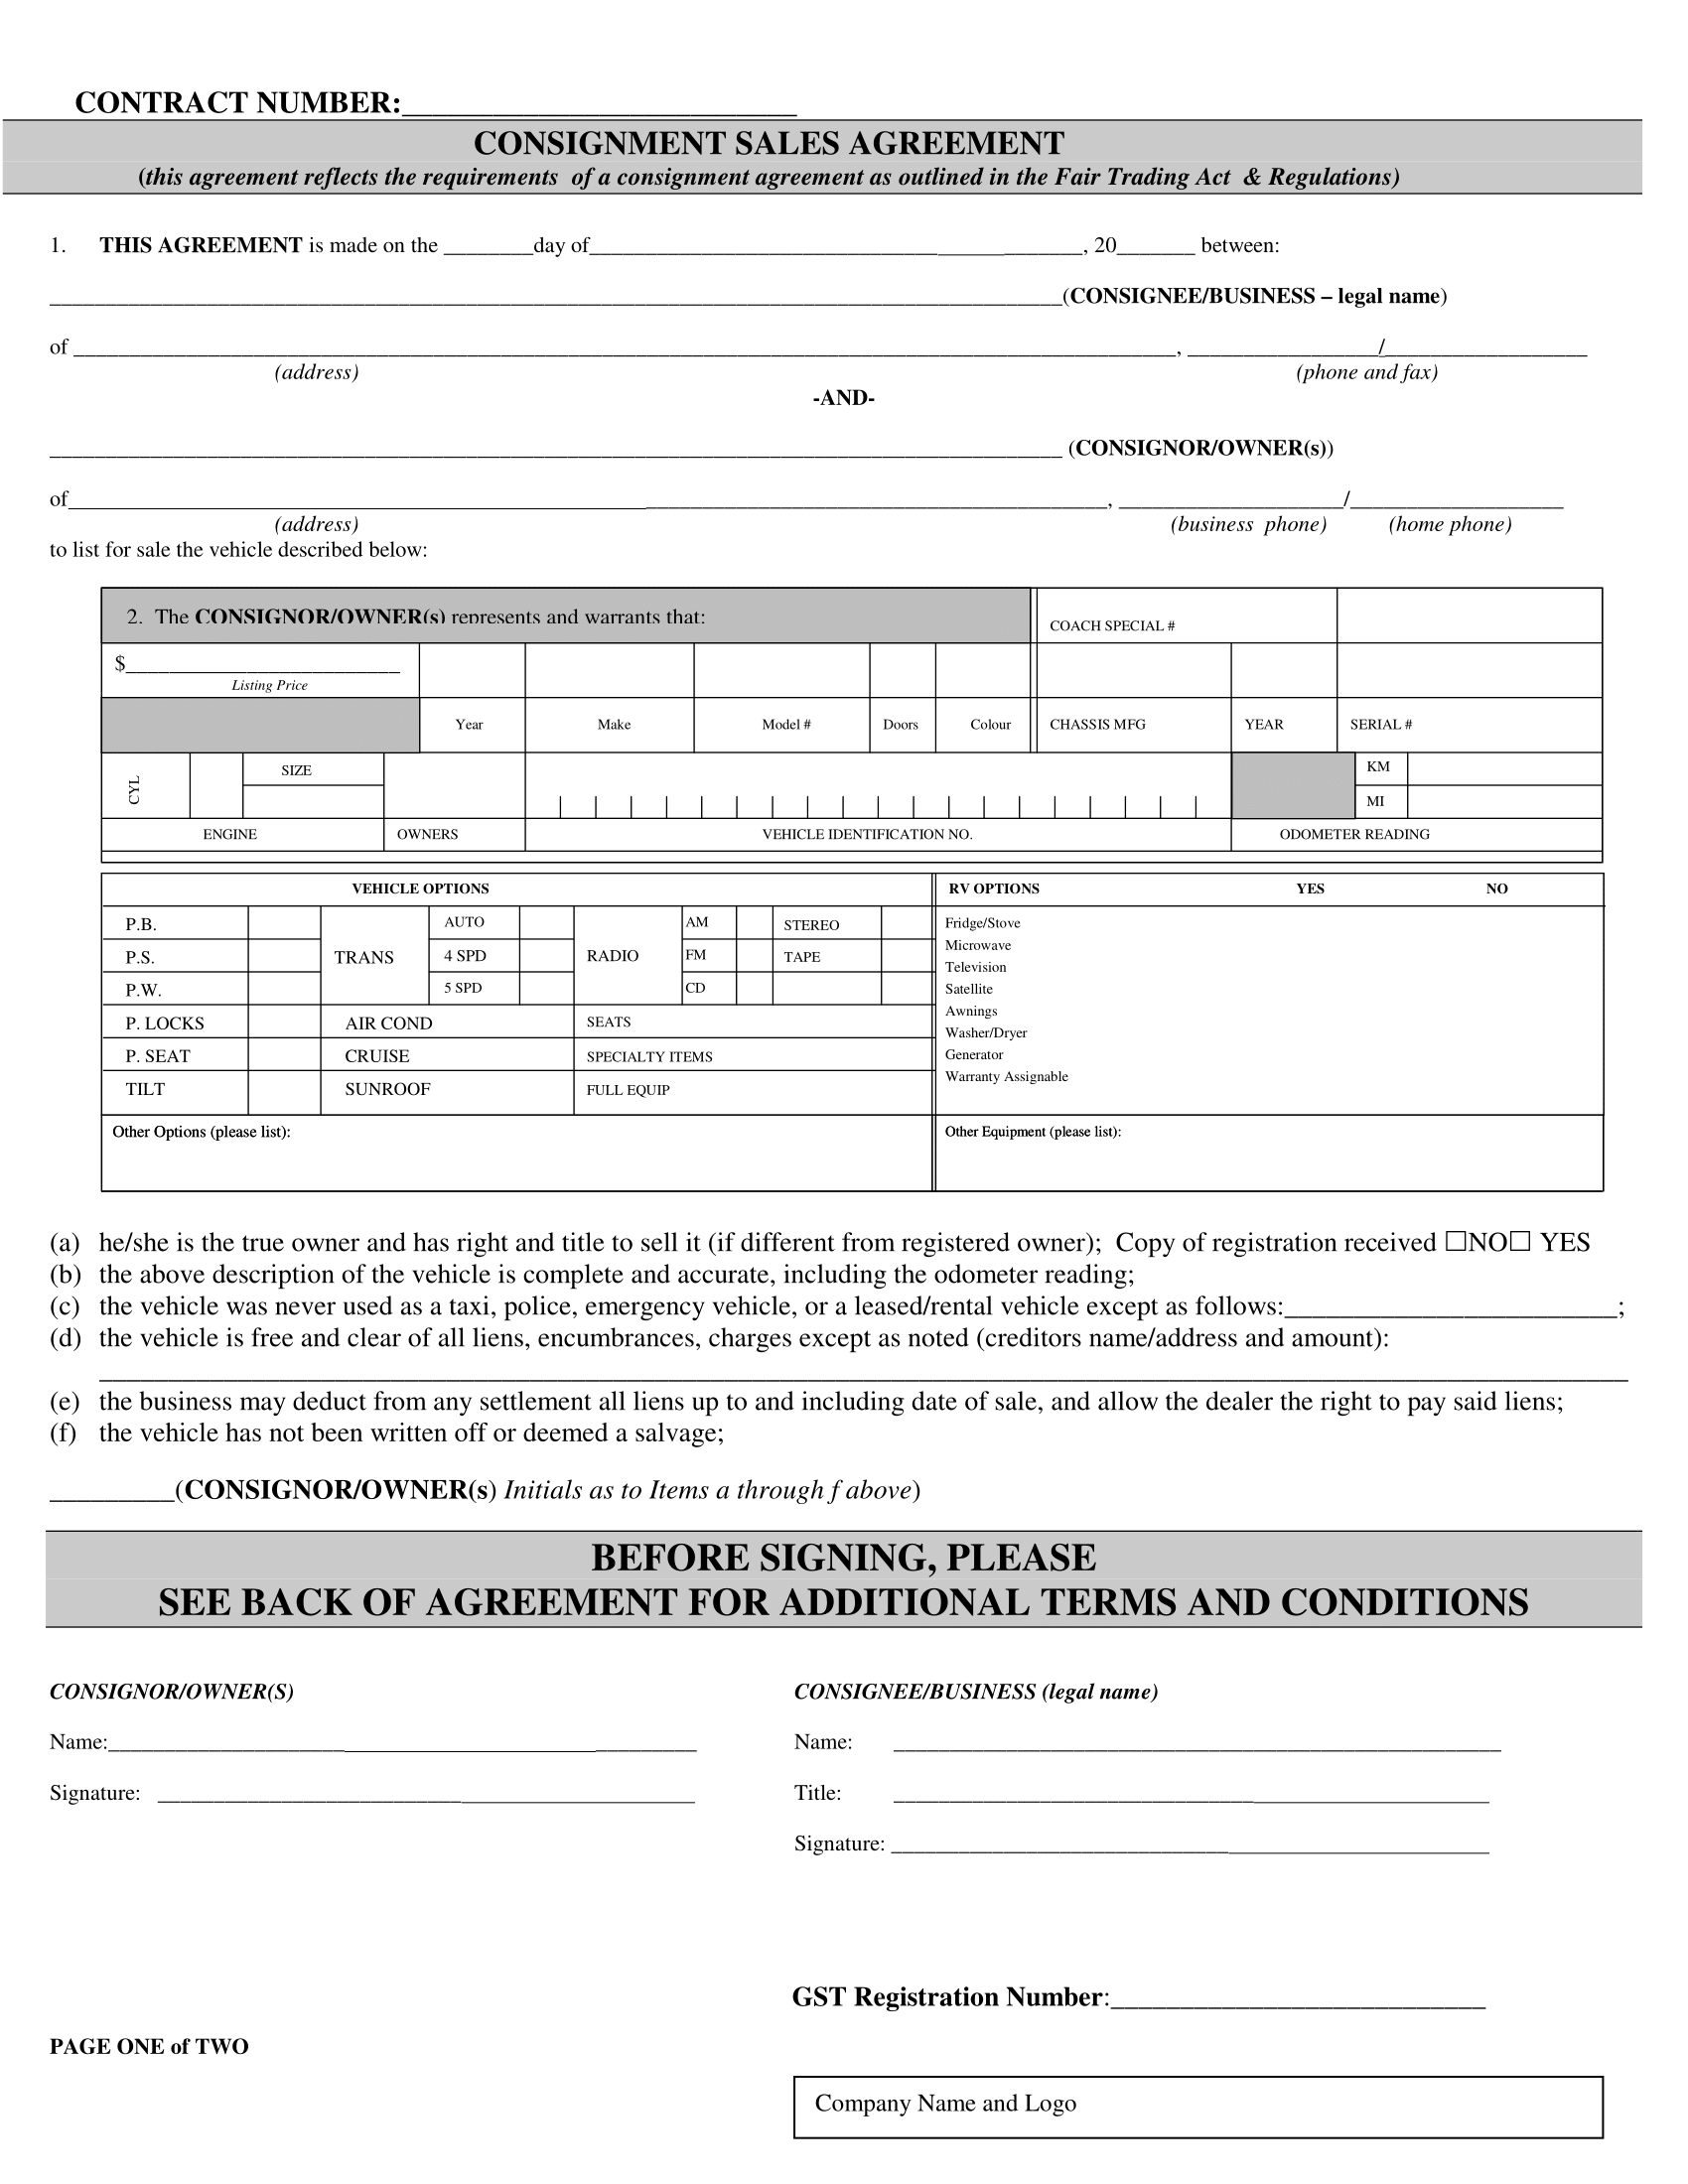 Consignment Sales Agreement Pdf Template Free Download 1  Home Sales Agreement Template